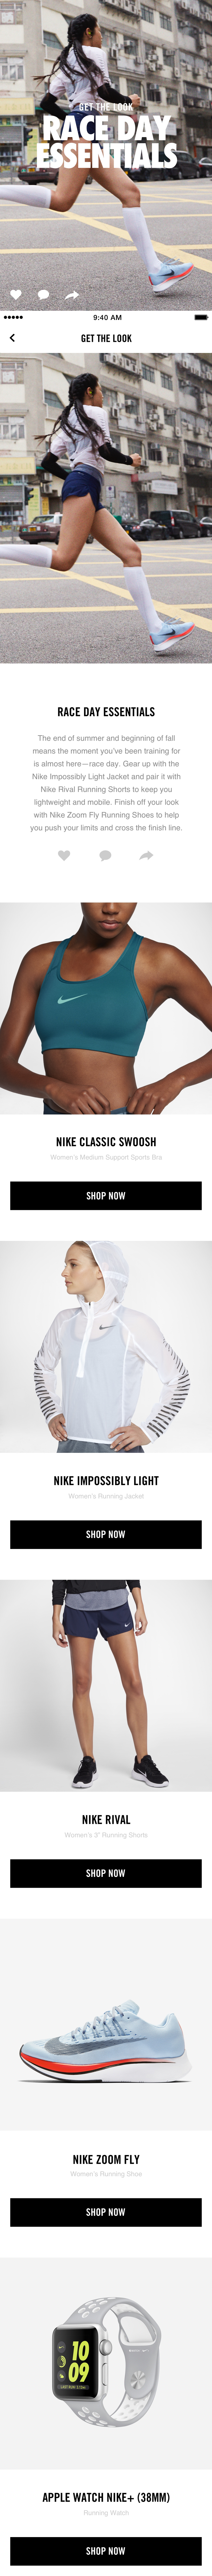 1622 - Running - Get the Look - Race Day Essentials_w @3x copy.jpg